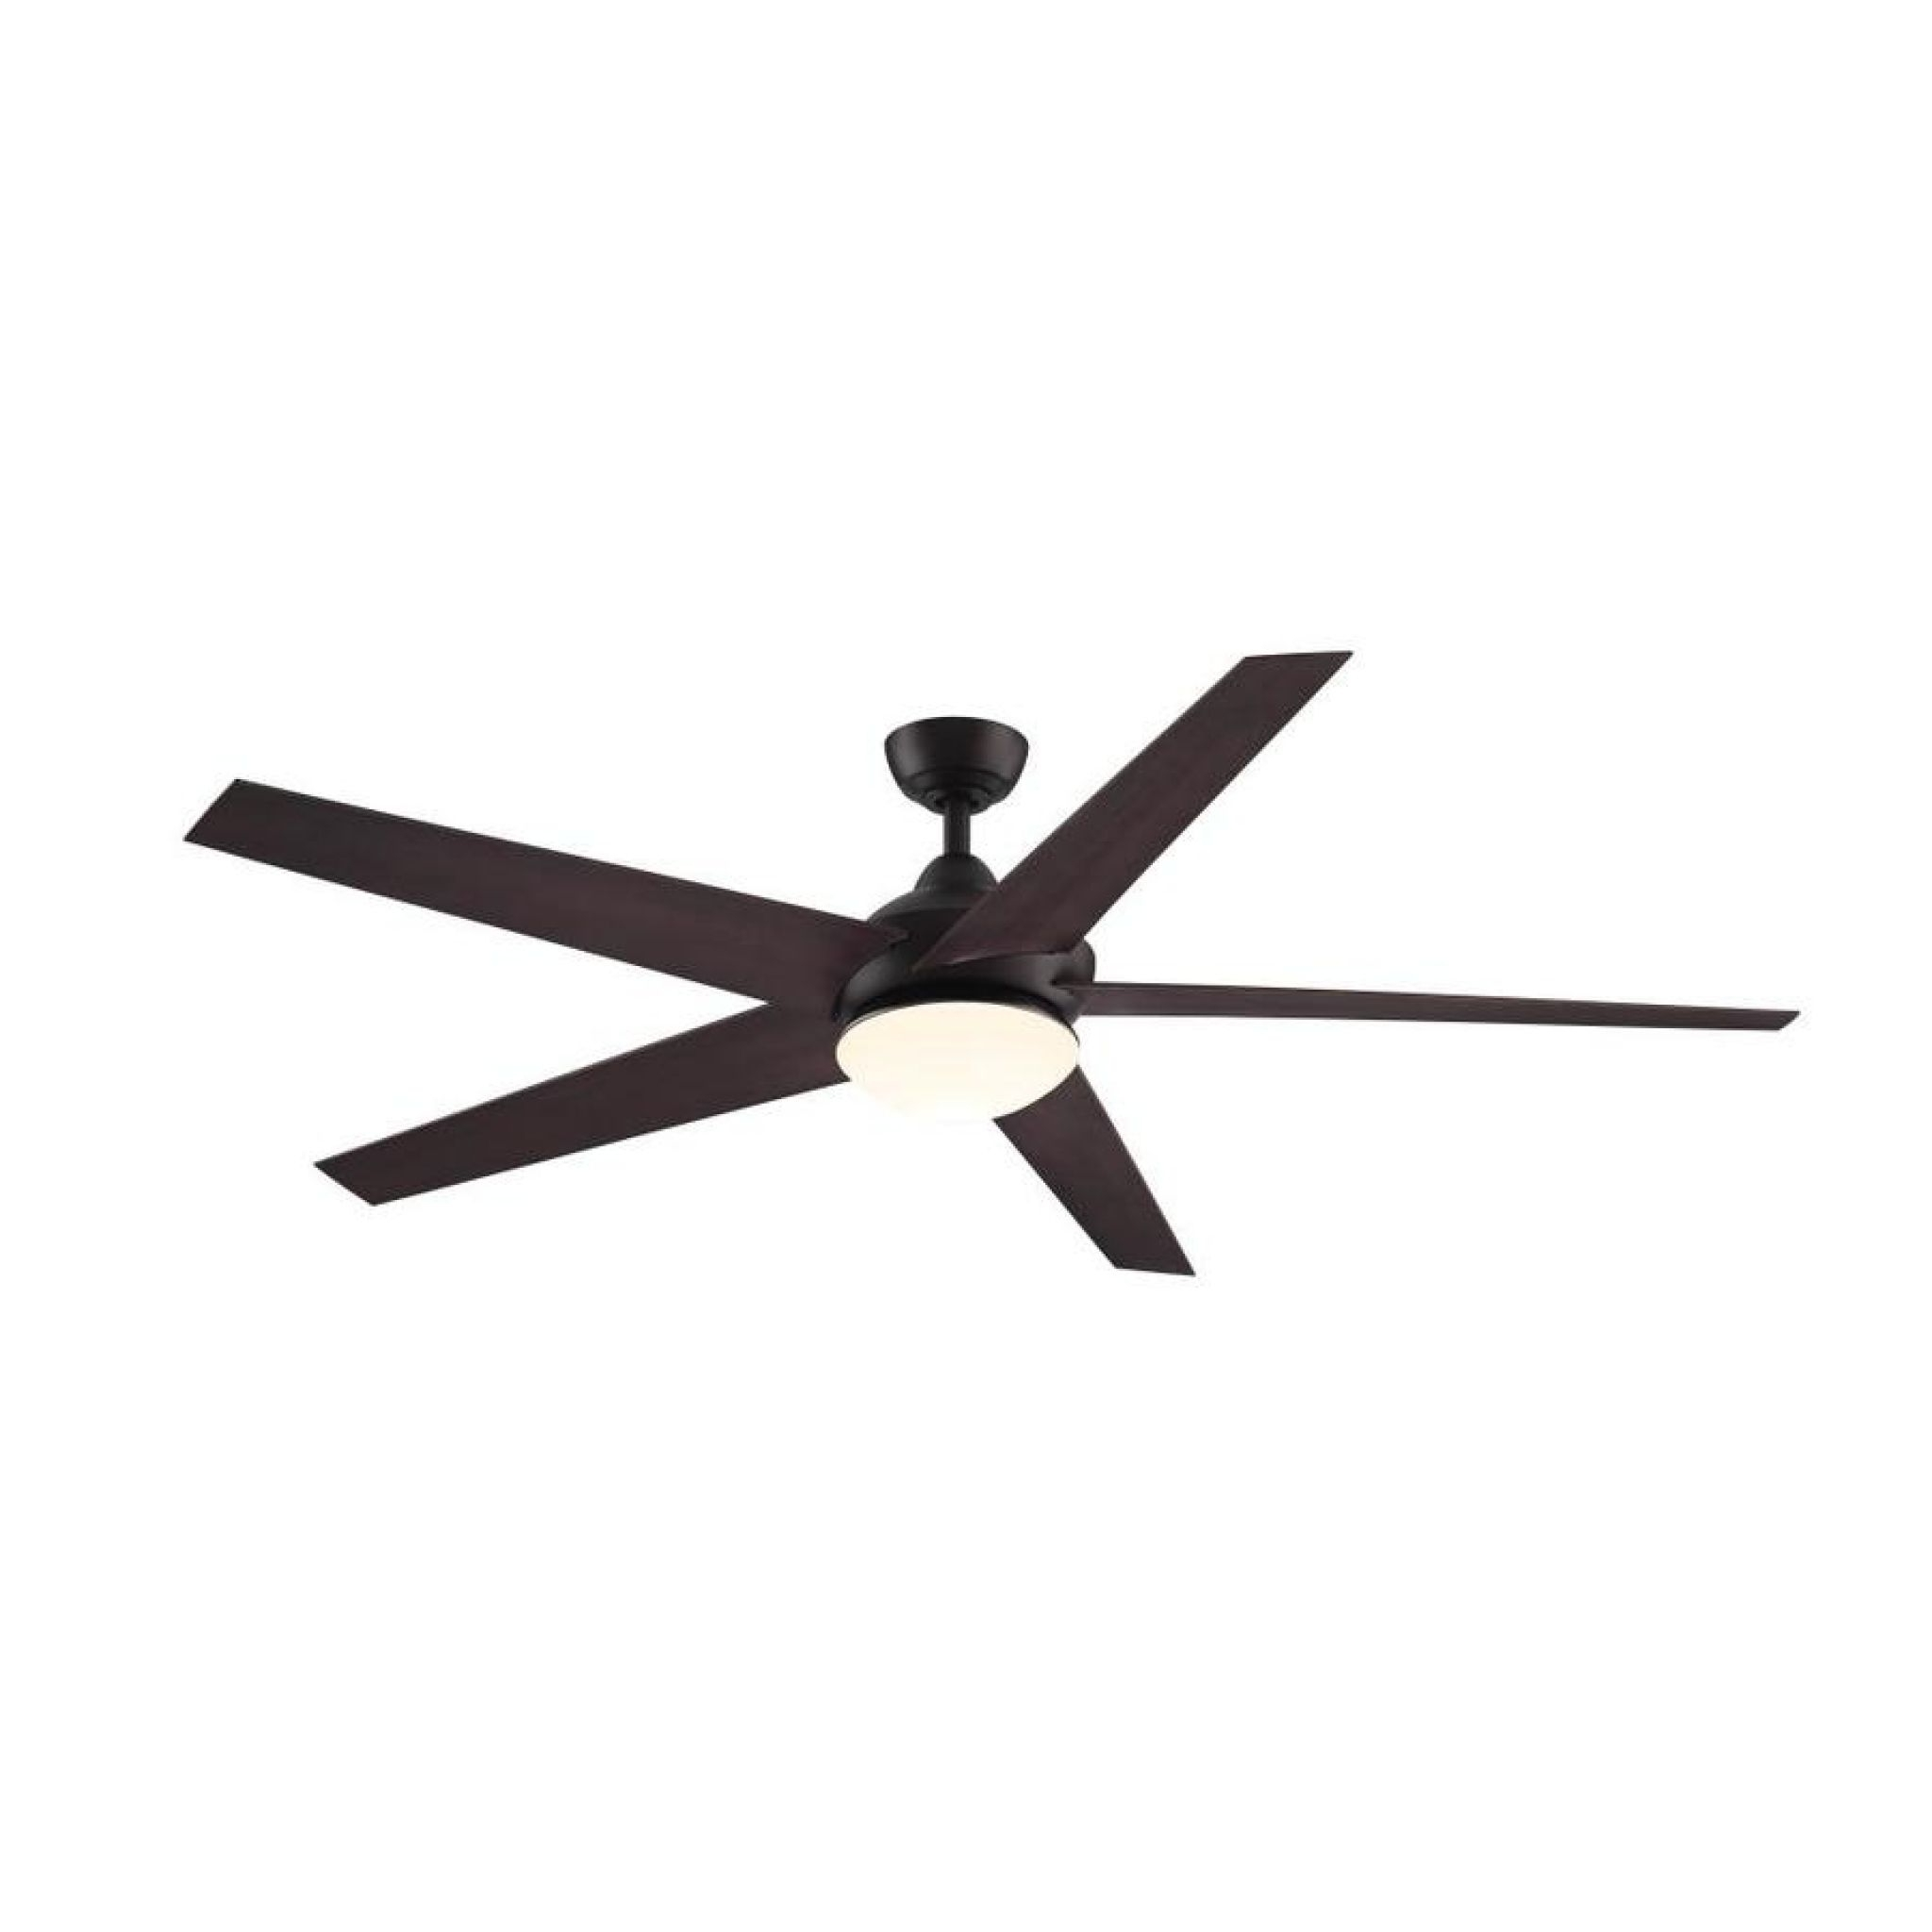 2018 Indoor Outdoor Ceiling Fans With Lights And Remote Pertaining To Outdoor Ceiling Fans With Lights And Remote – Interior Paint Color (View 7 of 20)